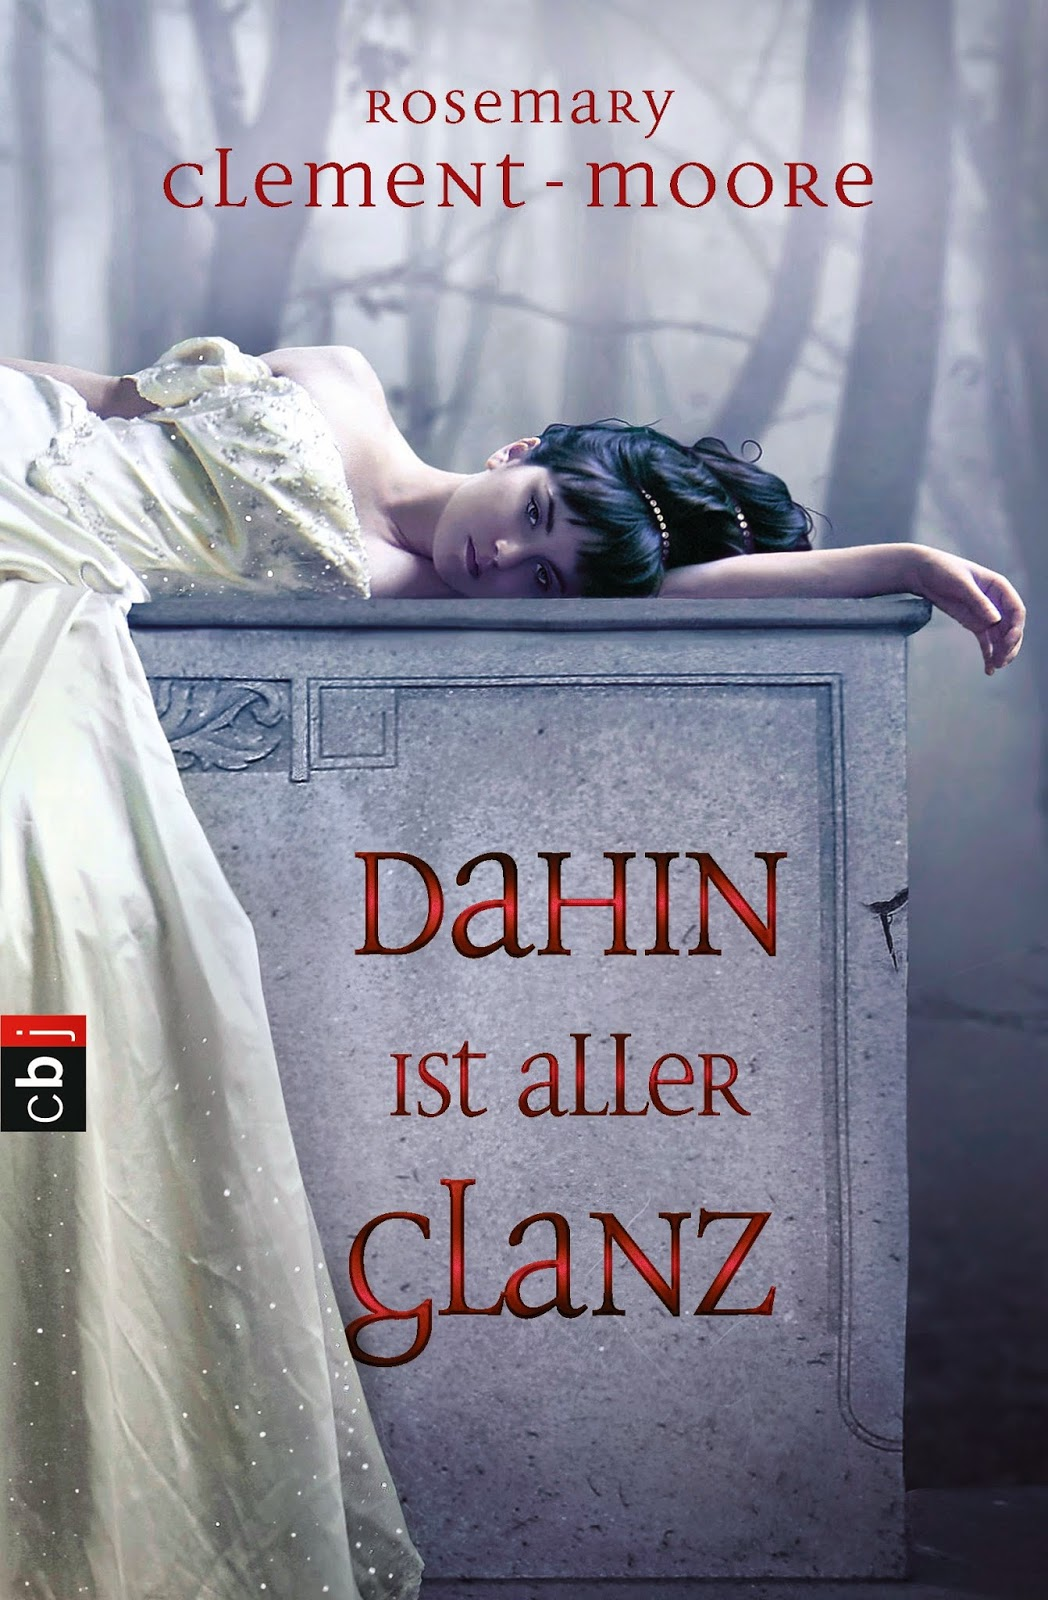 http://www.amazon.de/Dahin-aller-Glanz-Rosemary-Clement-Moore/dp/3570402401/ref=sr_1_1?ie=UTF8&qid=1413639606&sr=8-1&keywords=dahin+ist+aller+glanz